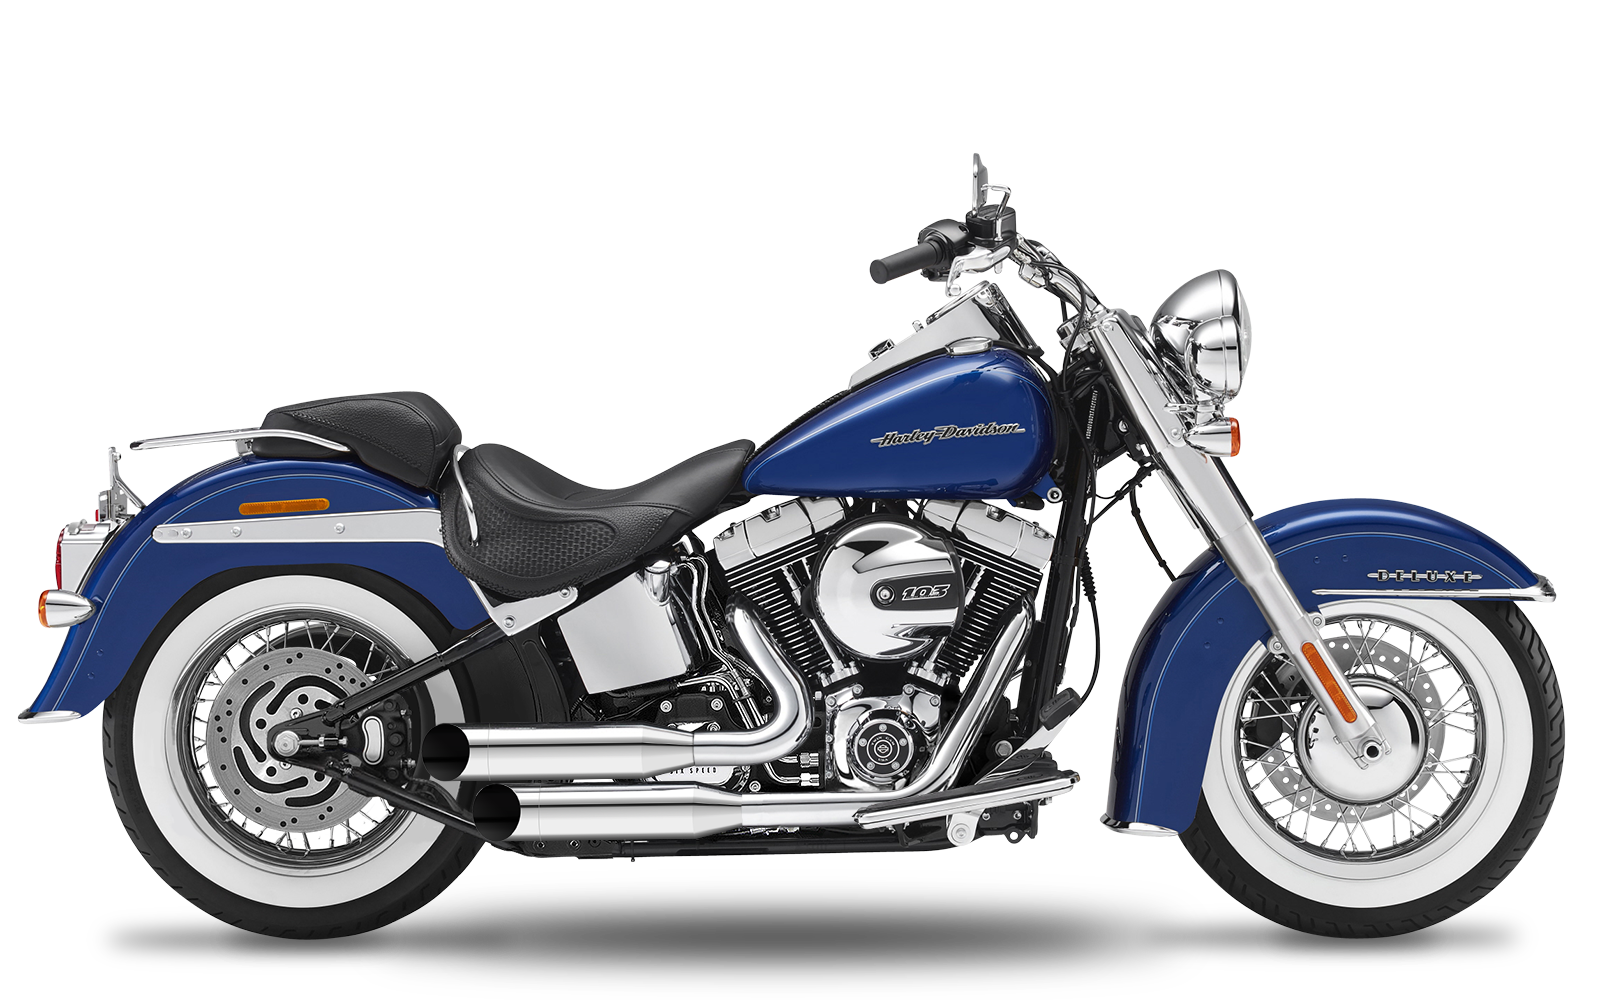 Softail - Deluxe - TC96 - 2007-2011 - Complete systems adjustable